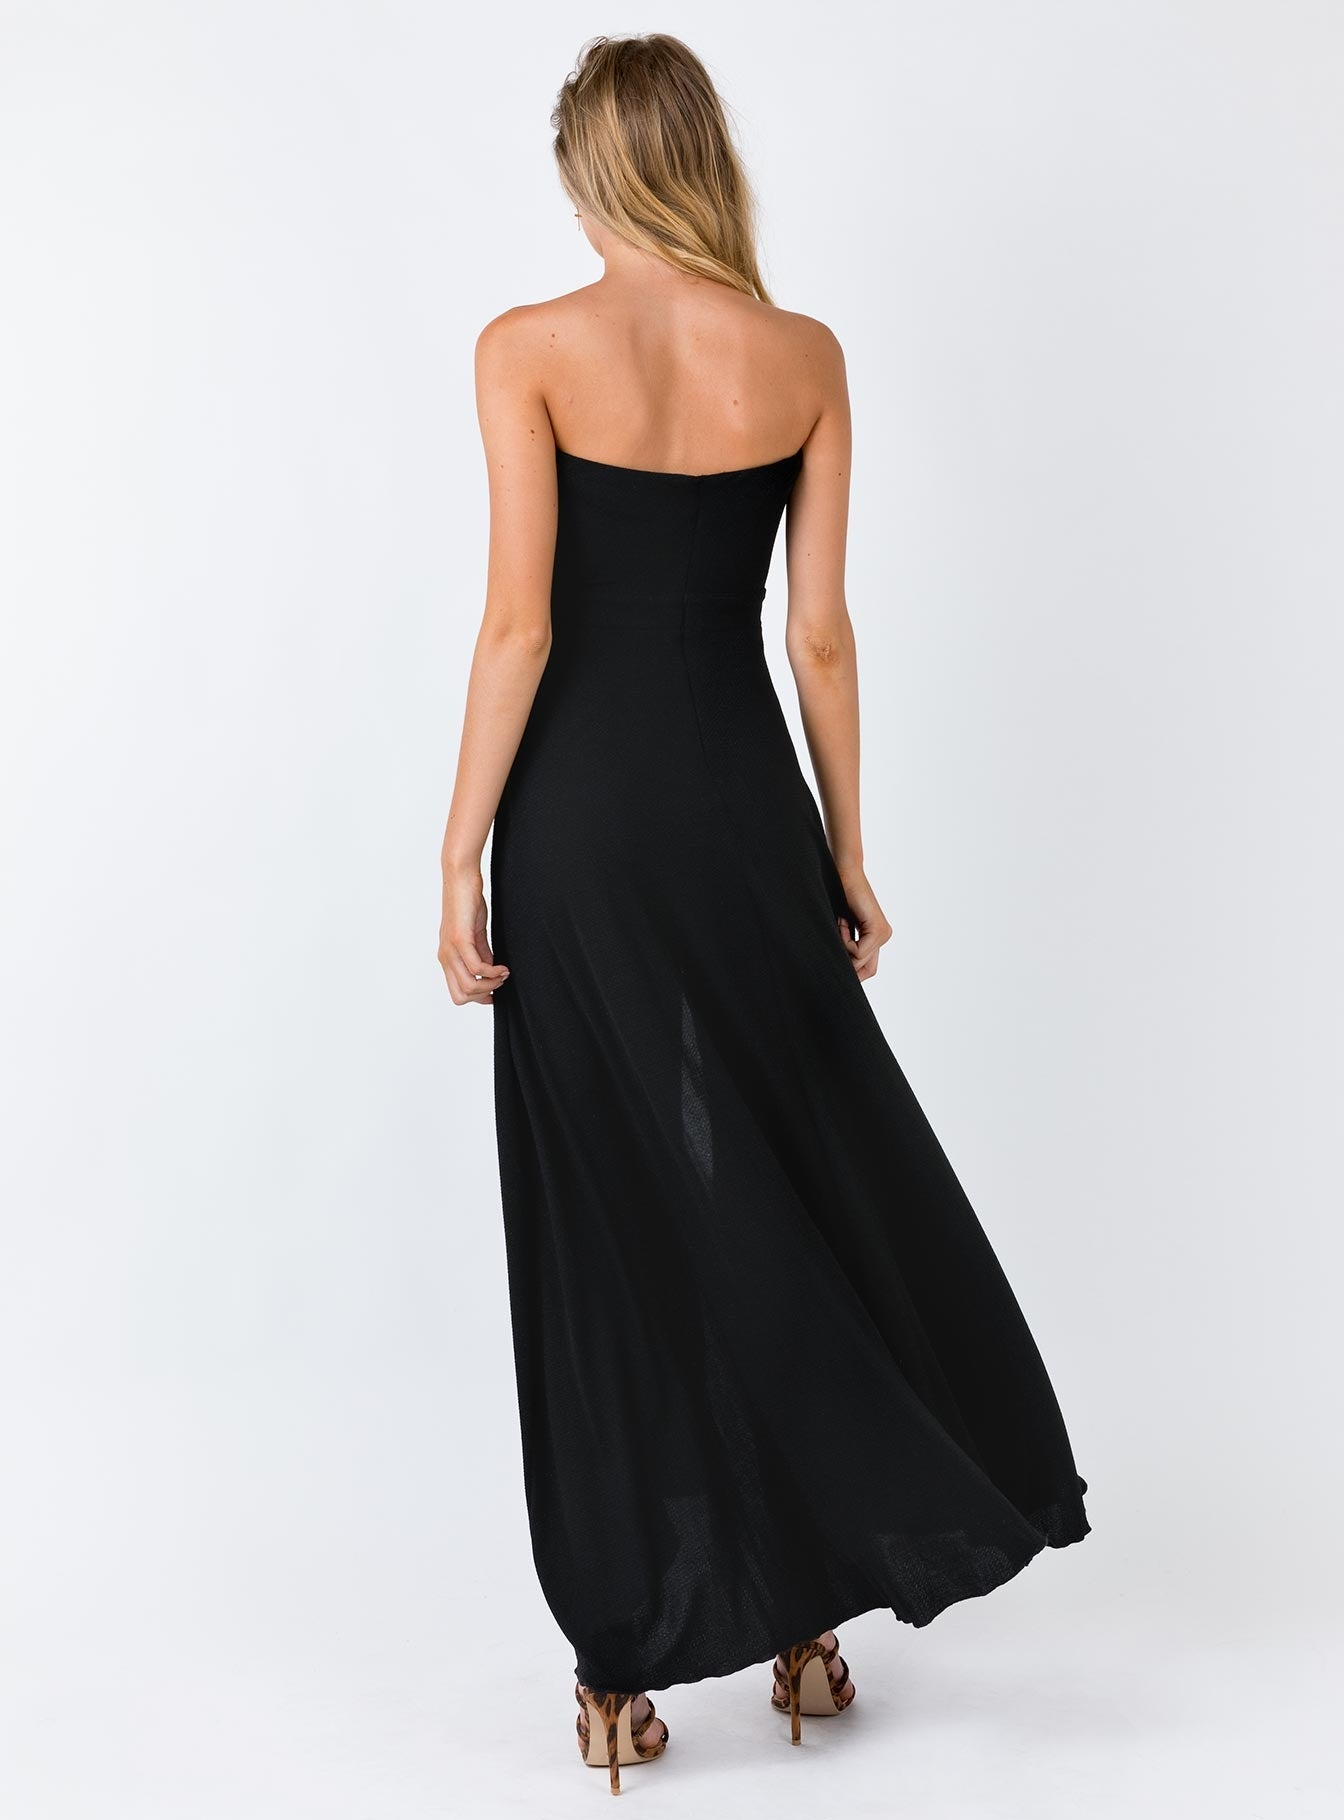 The Adrianne Strapless Maxi Dress Black